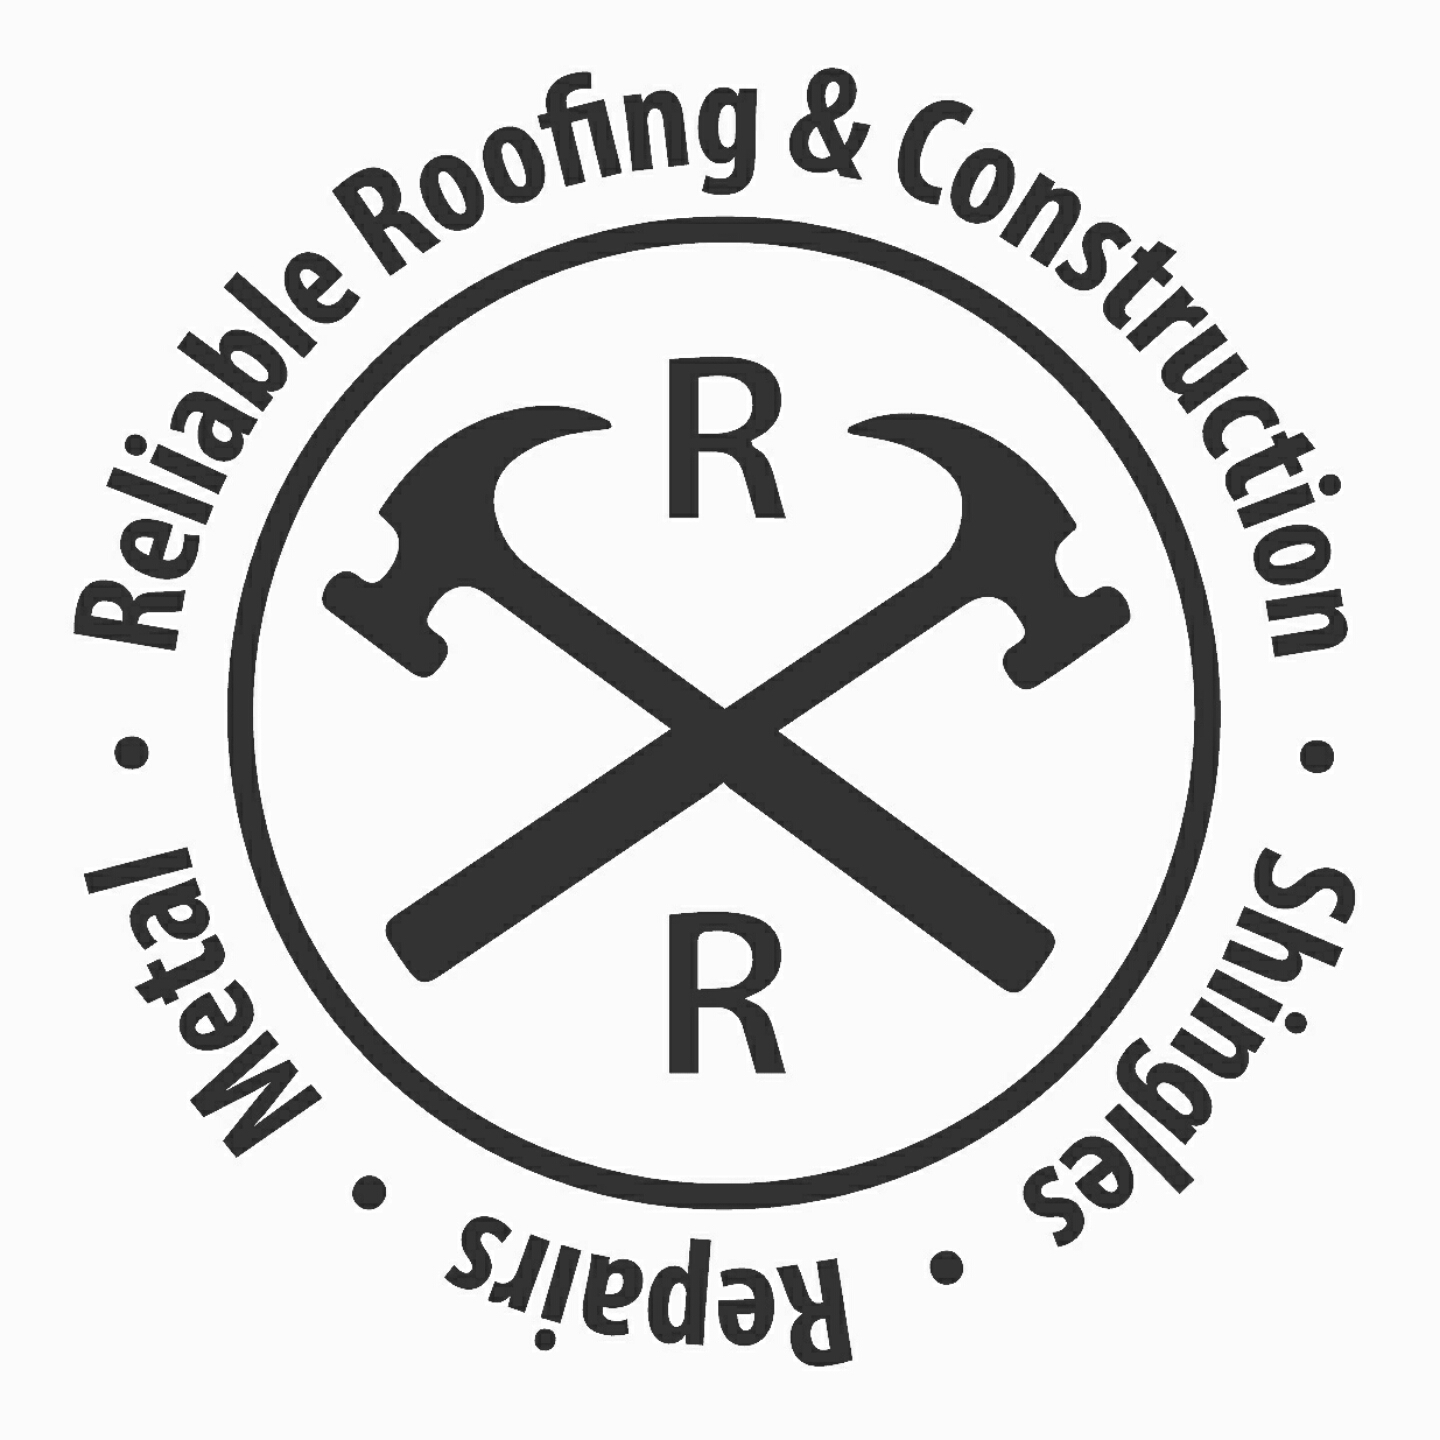 Reliable Roofing & Construction logo